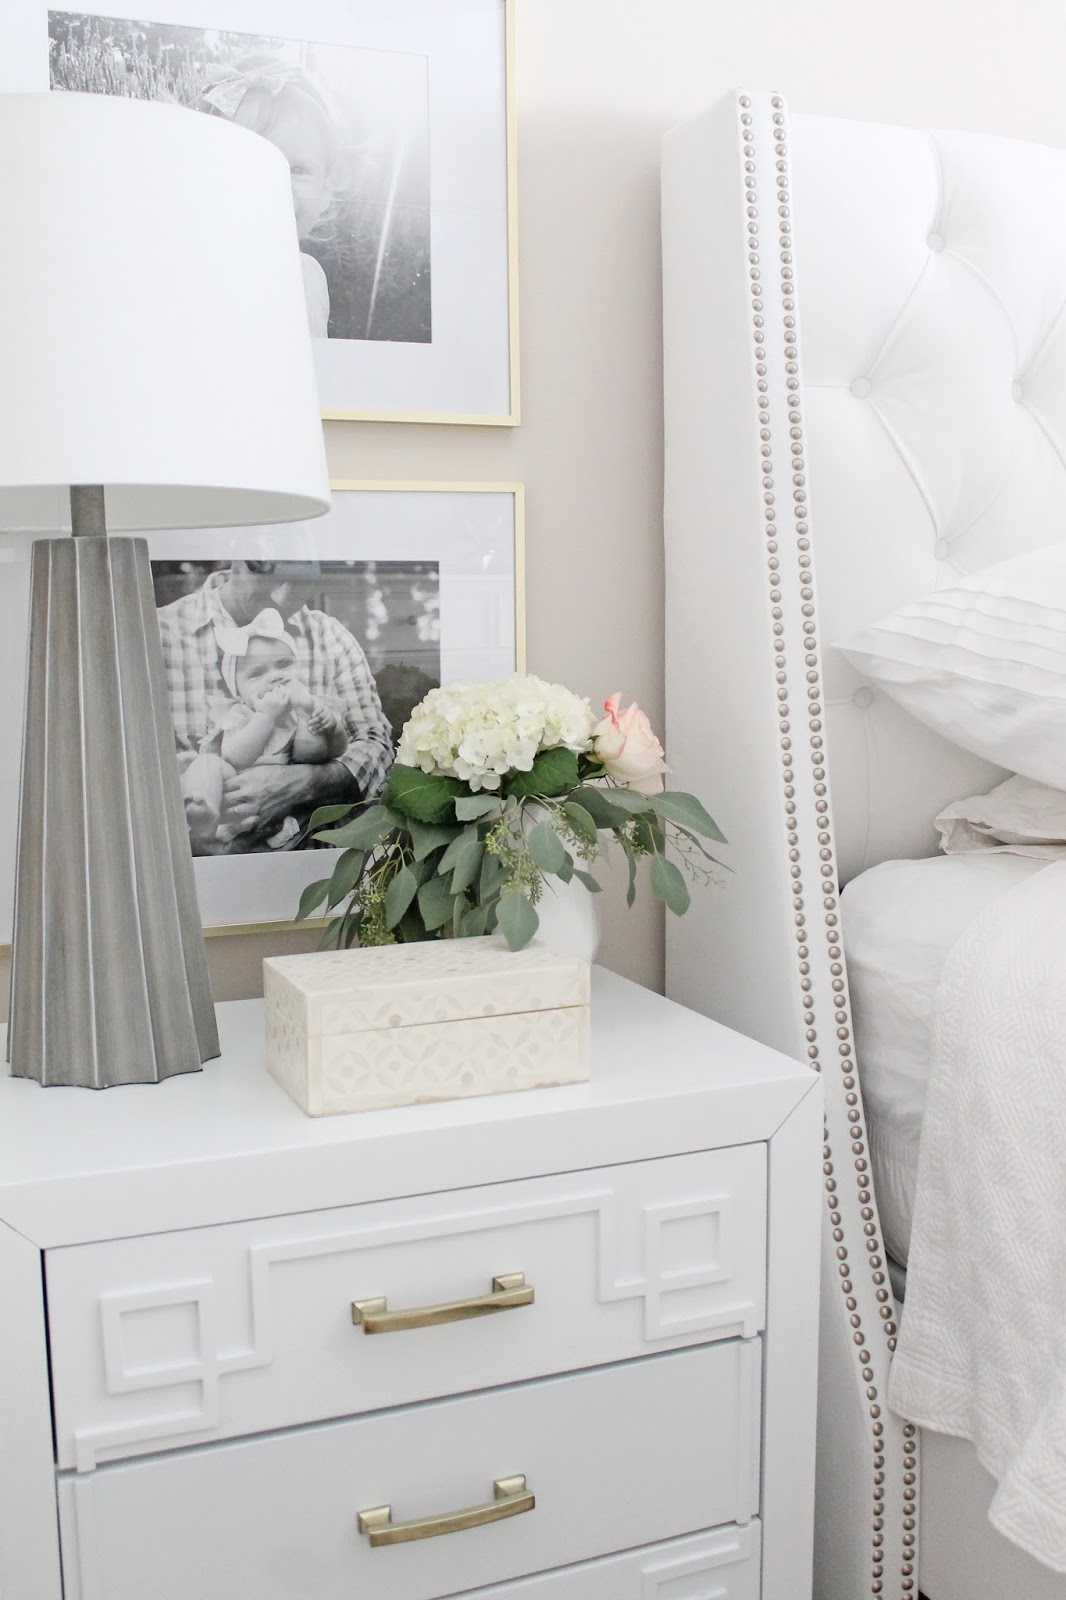 Master Bedroom Decorating Ideas On A Budget: 12th And White: How To Decorate A Master Bedroom On A